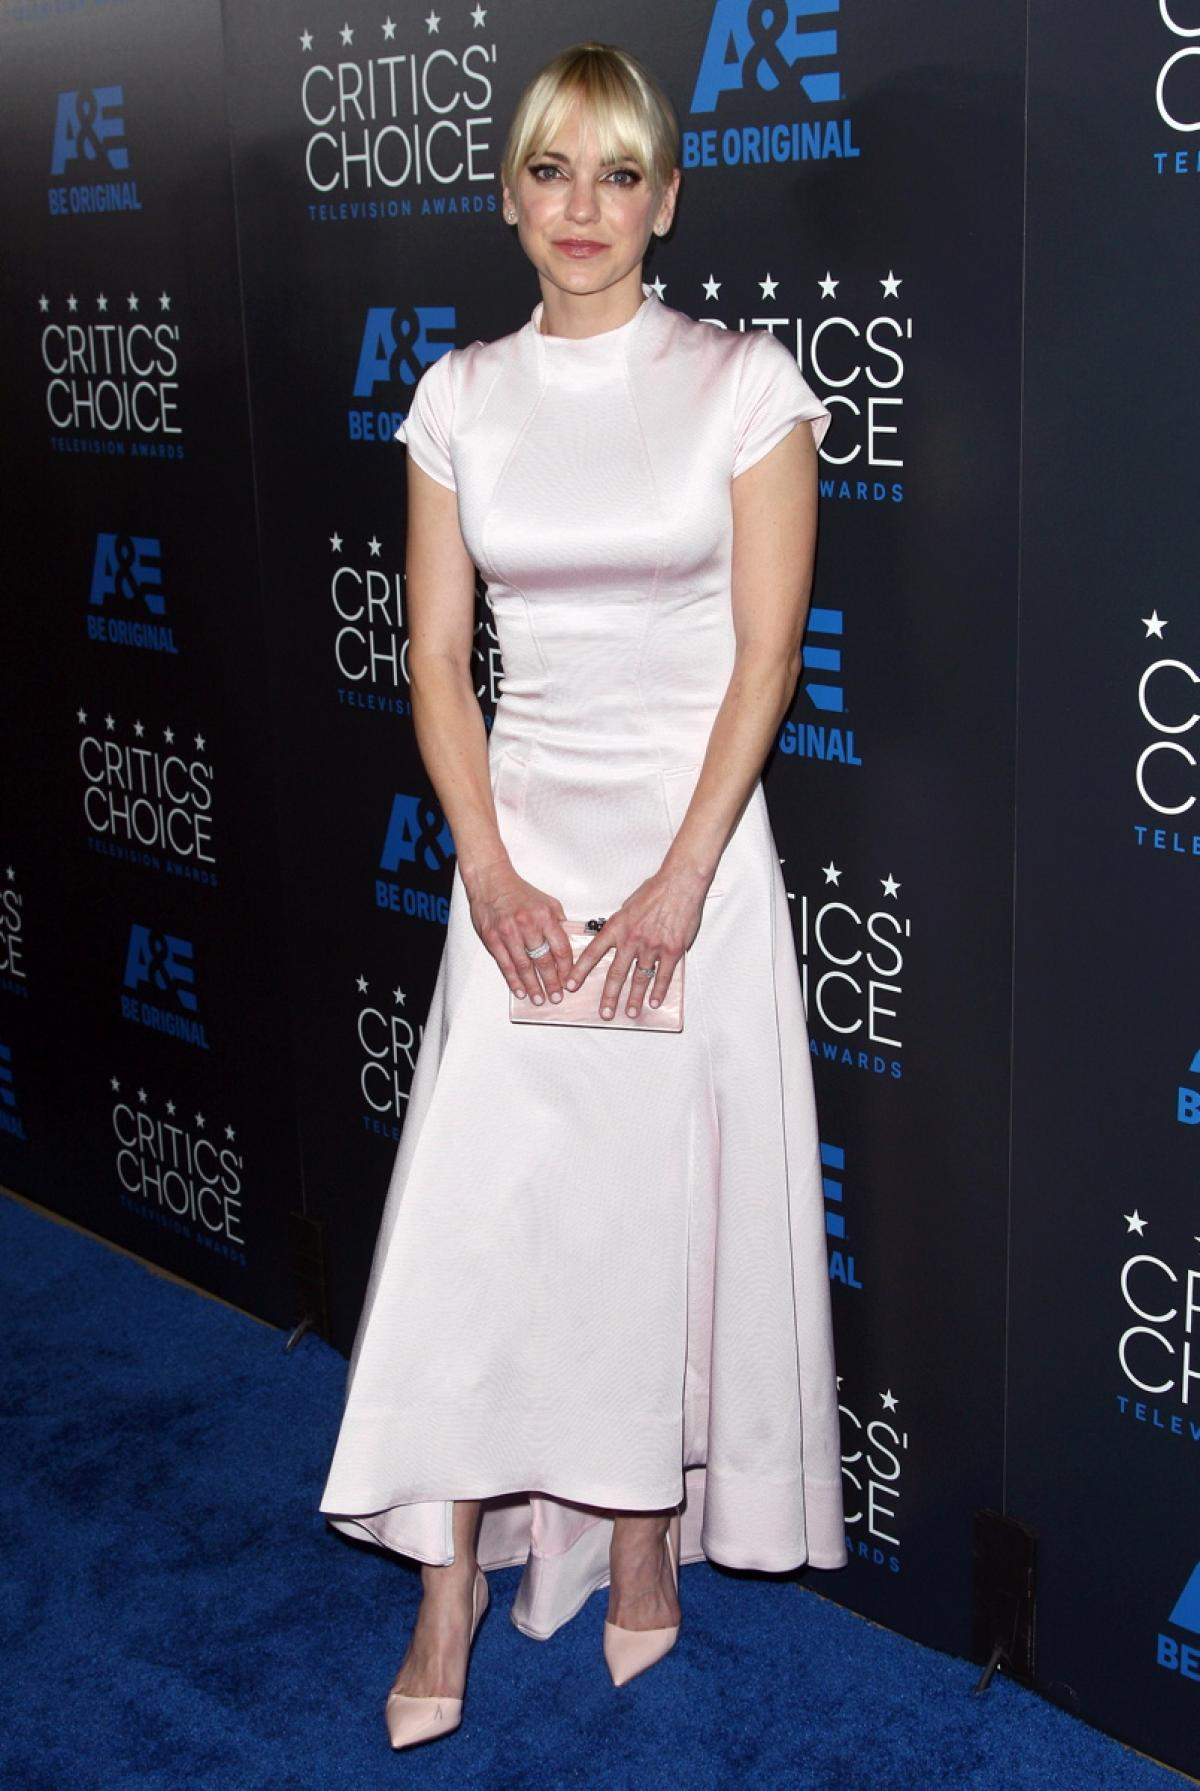 anna-faris-at-5th-annual-critics-choice-television-awards-in-beverly-hills_1